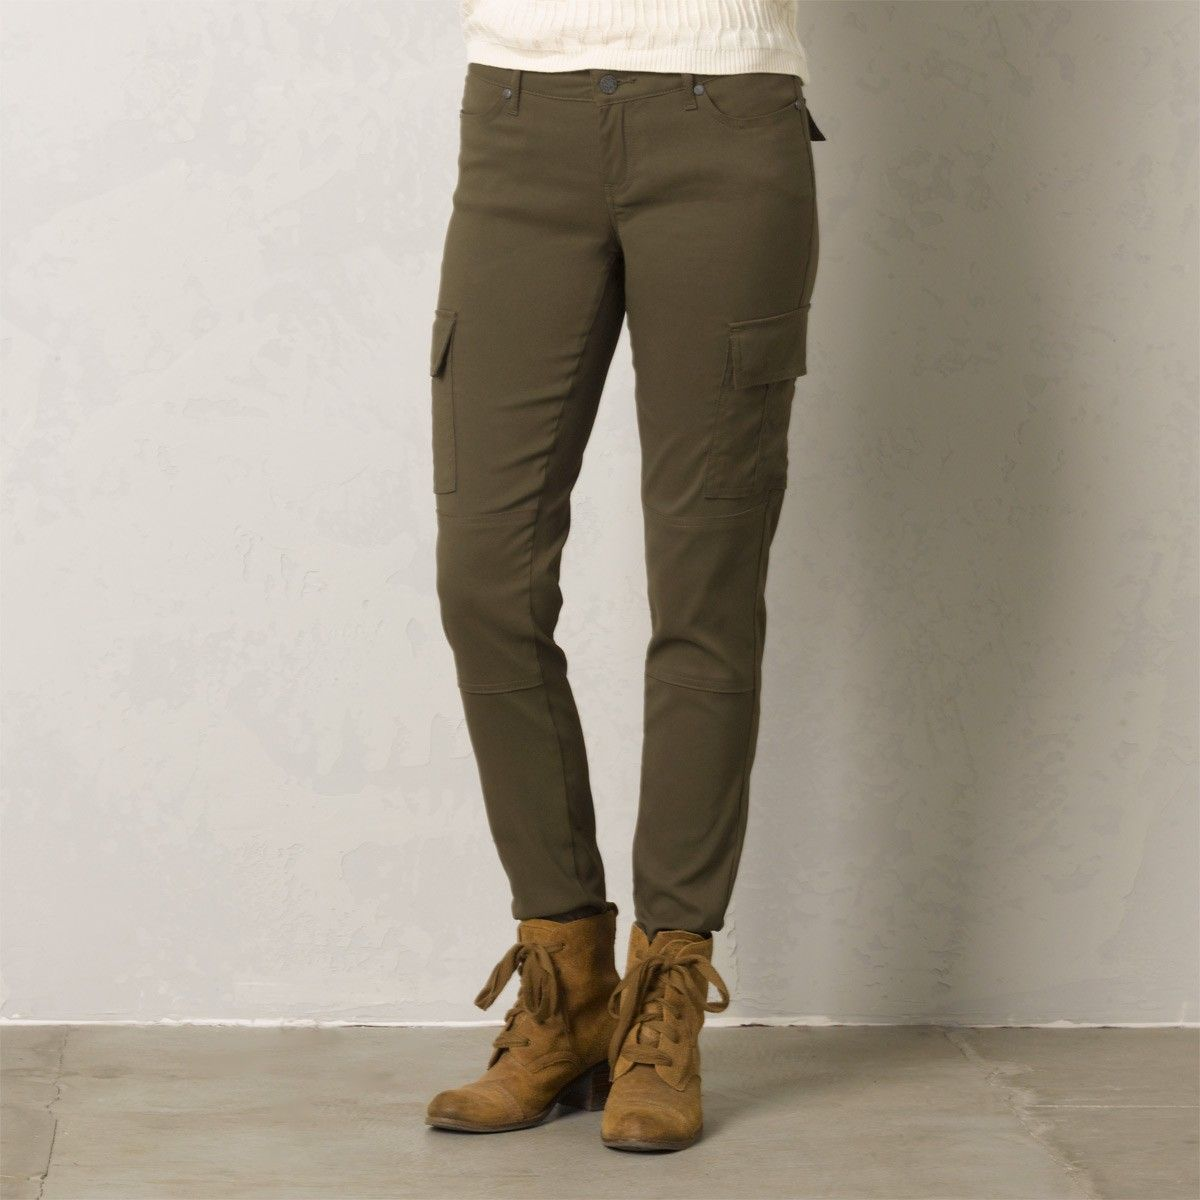 805678d3cd201b348feb2cf31a09fb30 meme pant classic style, stretches and outdoors